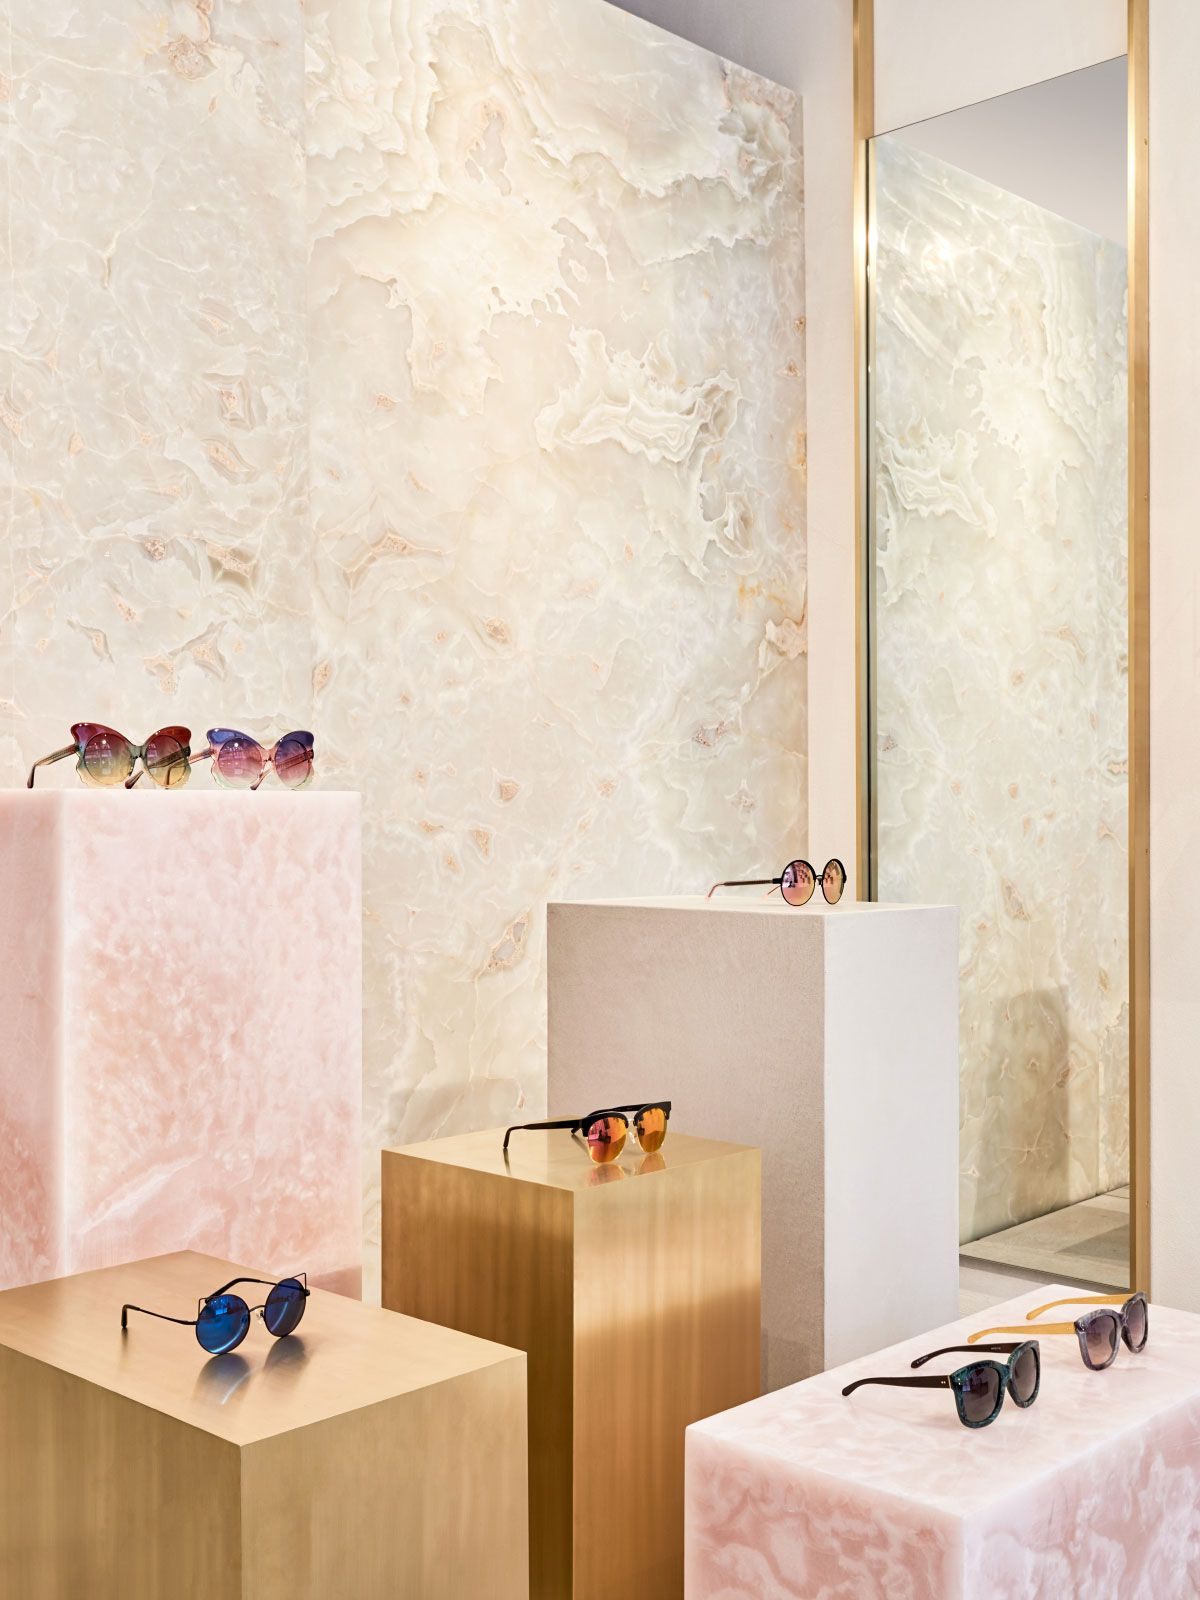 Studio Giancarlo Valle Designs Linda Farrow's First US Store in SoHo, New York City | Yellowtrace